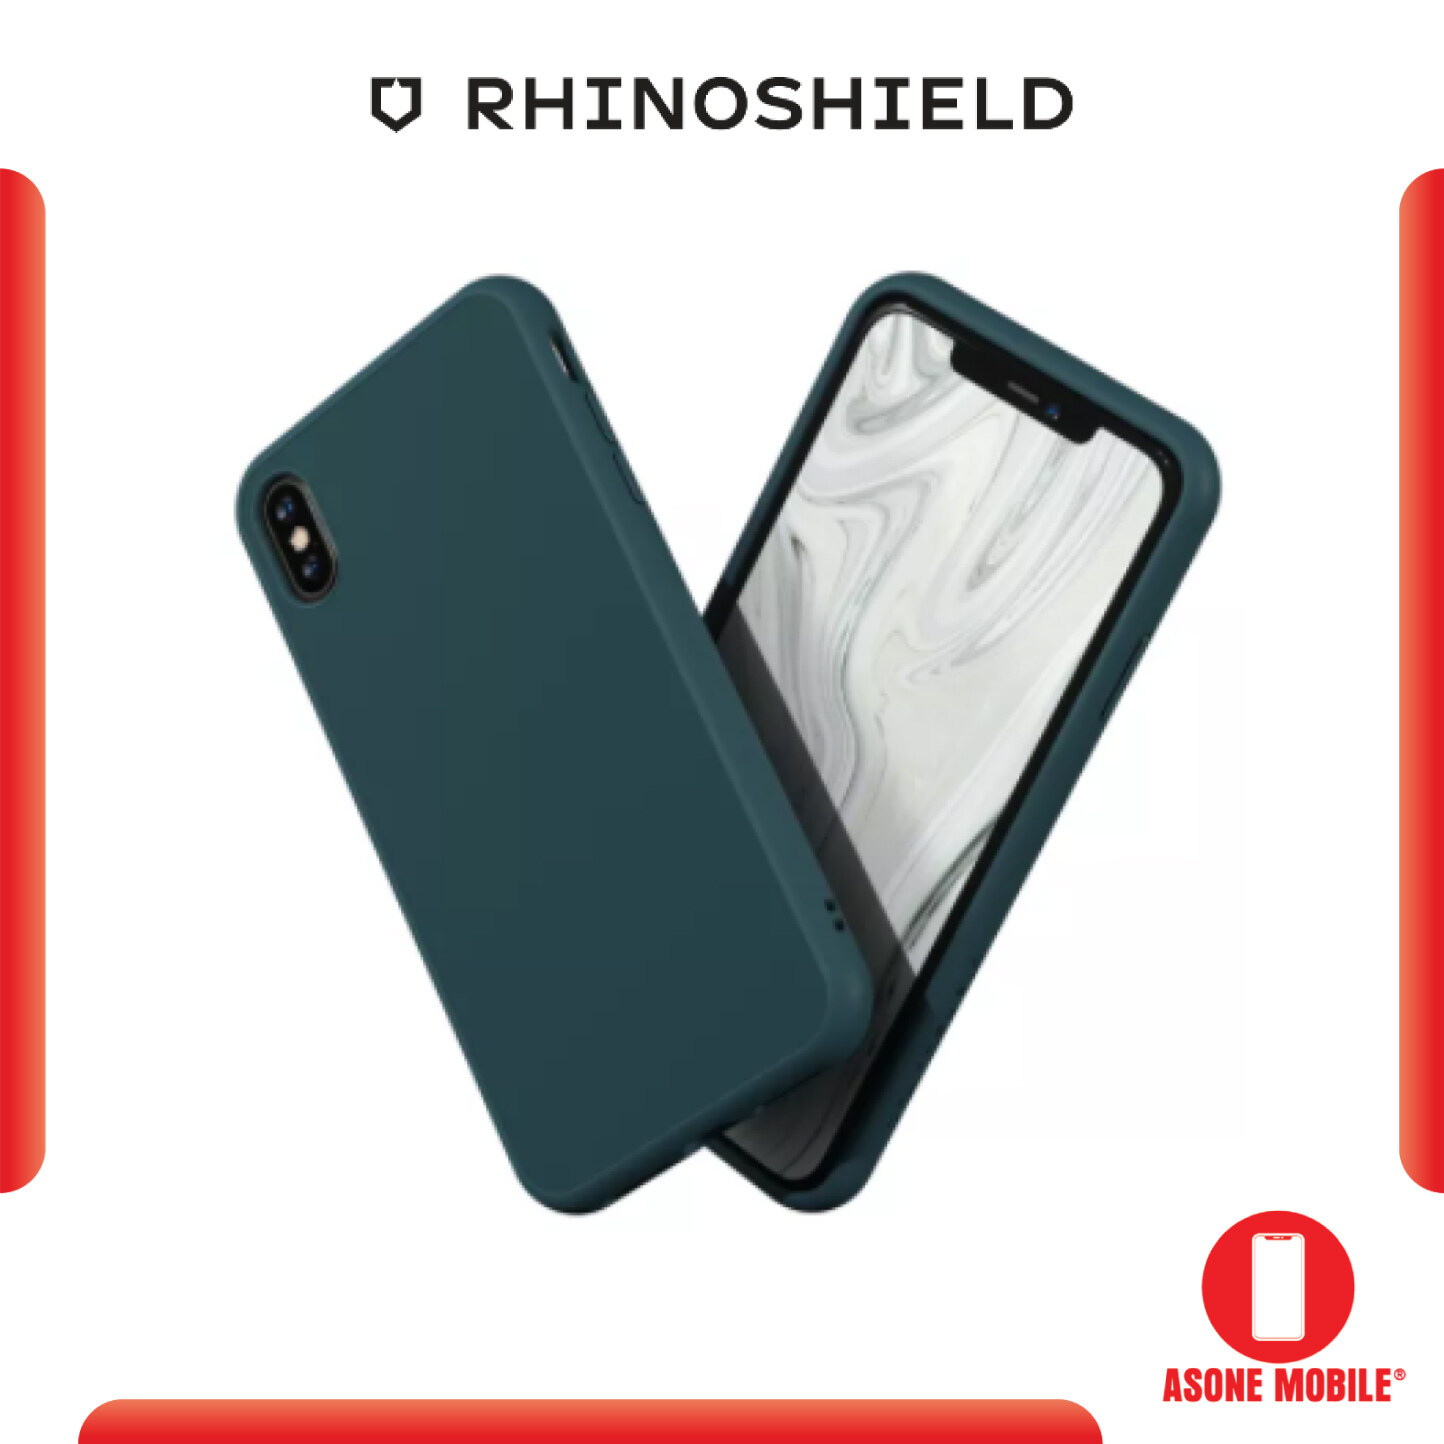 RhinoShield SolidSuit Dark Teal IPhone XR / XS / XS Max / X Shock Absorbent Slim Design Protective Cover With Premium Matte Finish 3.5M / 11ft Drop Protection Case